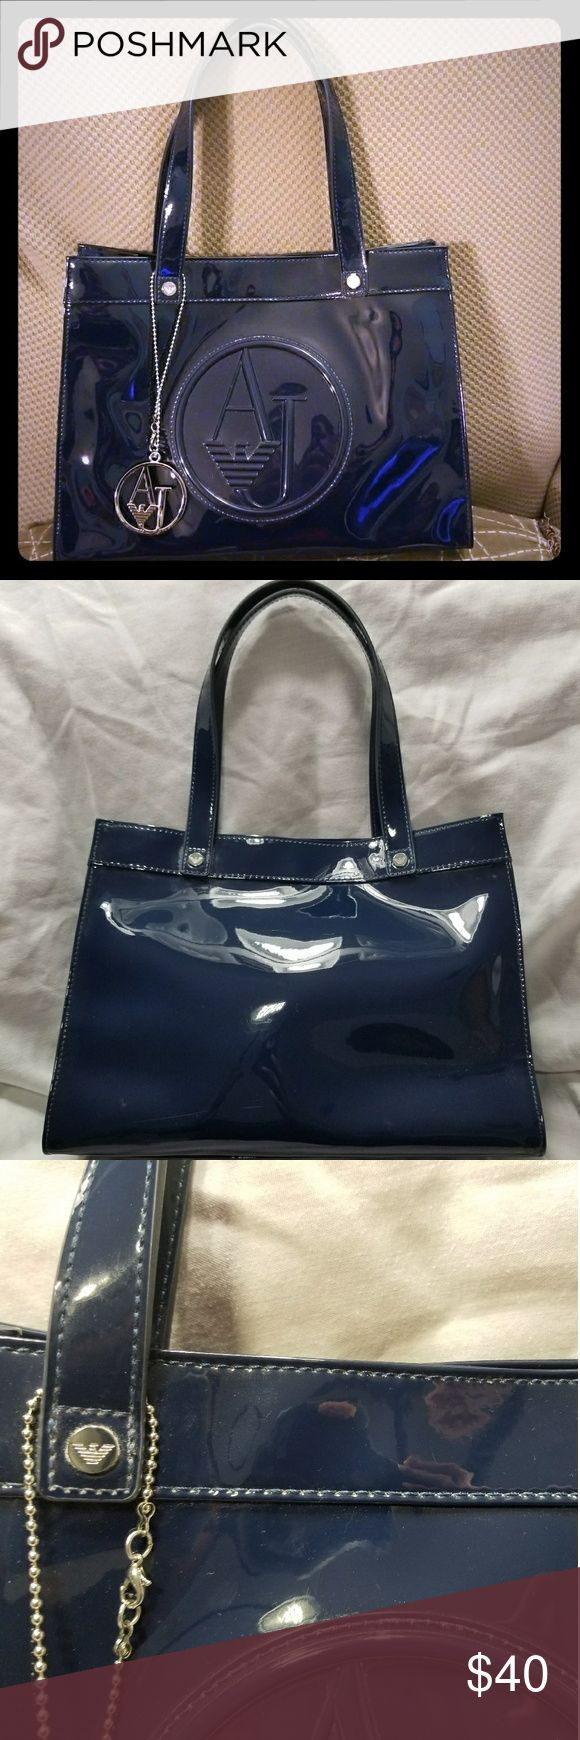 Armani Jeans Blue Handbag / Purse Like New! Armani Jeans Blue handbag. 100% PVC. Solid blue color. Internal pocket. Intact lining. Only a slight scuff on the lower left corner of the back of the bag (see pictures). MSRP $220. Armani Jeans Bags Totes